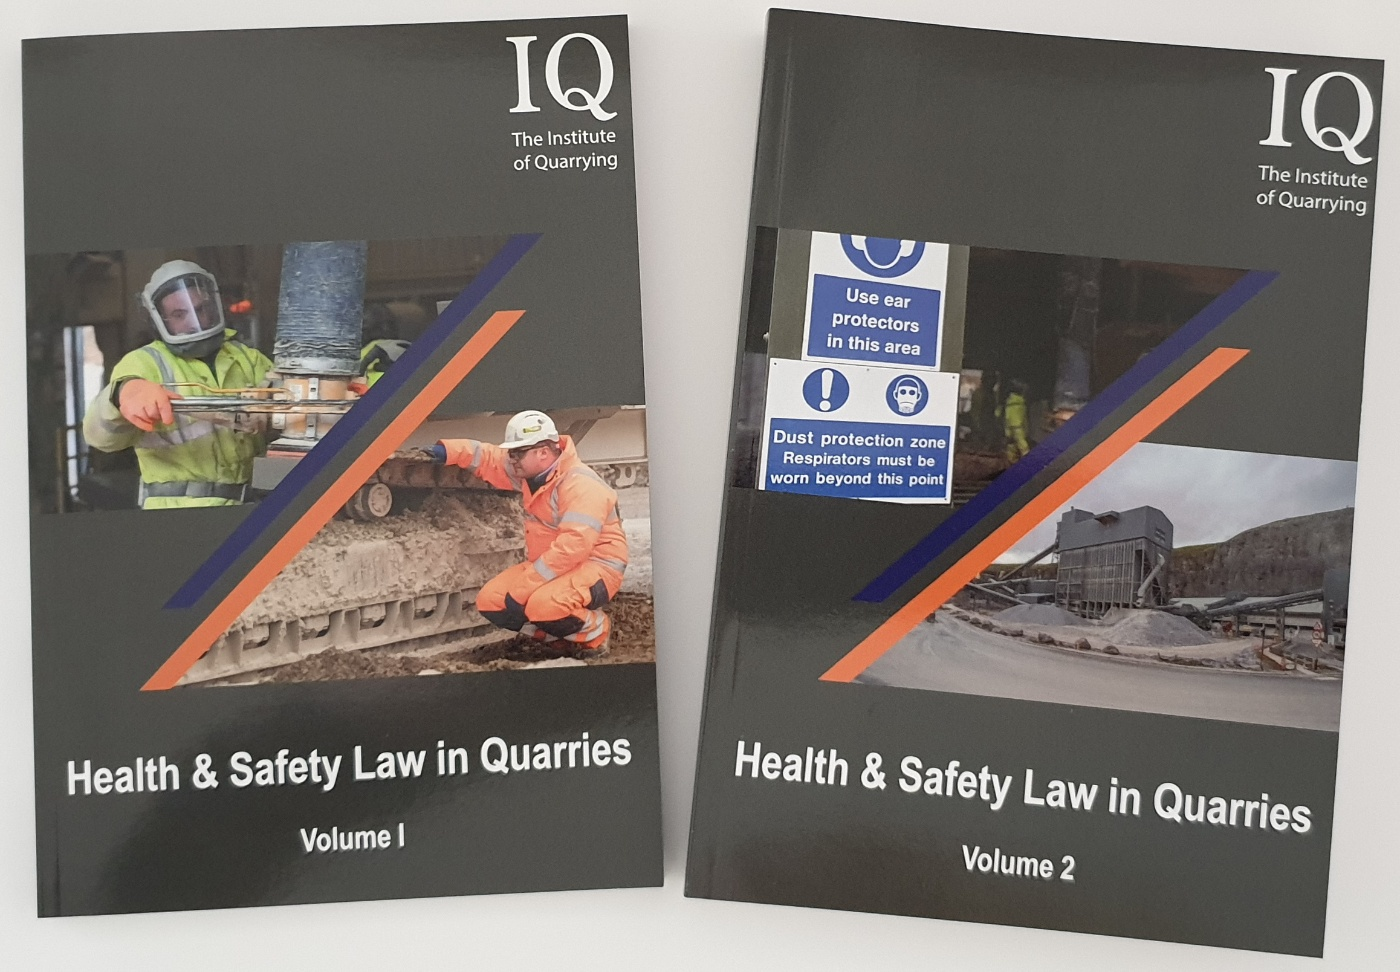 H&S Law in Quarries Vol 1 and 2